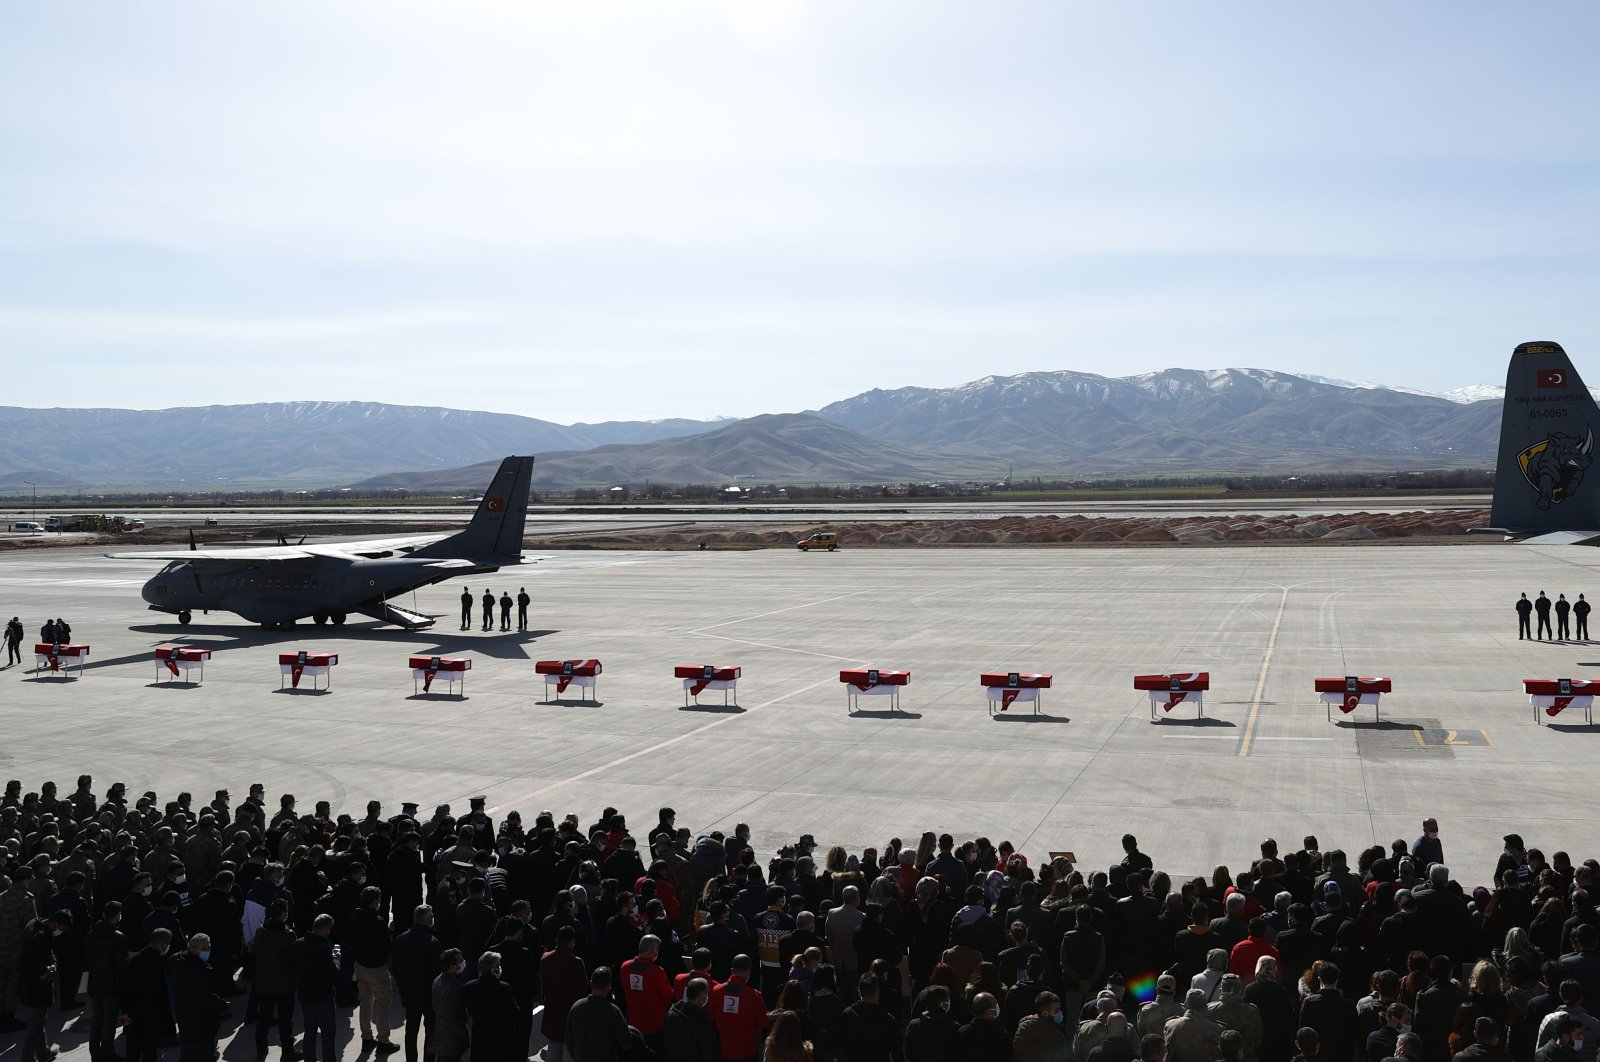 A view of coffins lined on the runway during a military funeral service in Elazığ, eastern Turkey, March 5, 2021. (AA PHOTO)